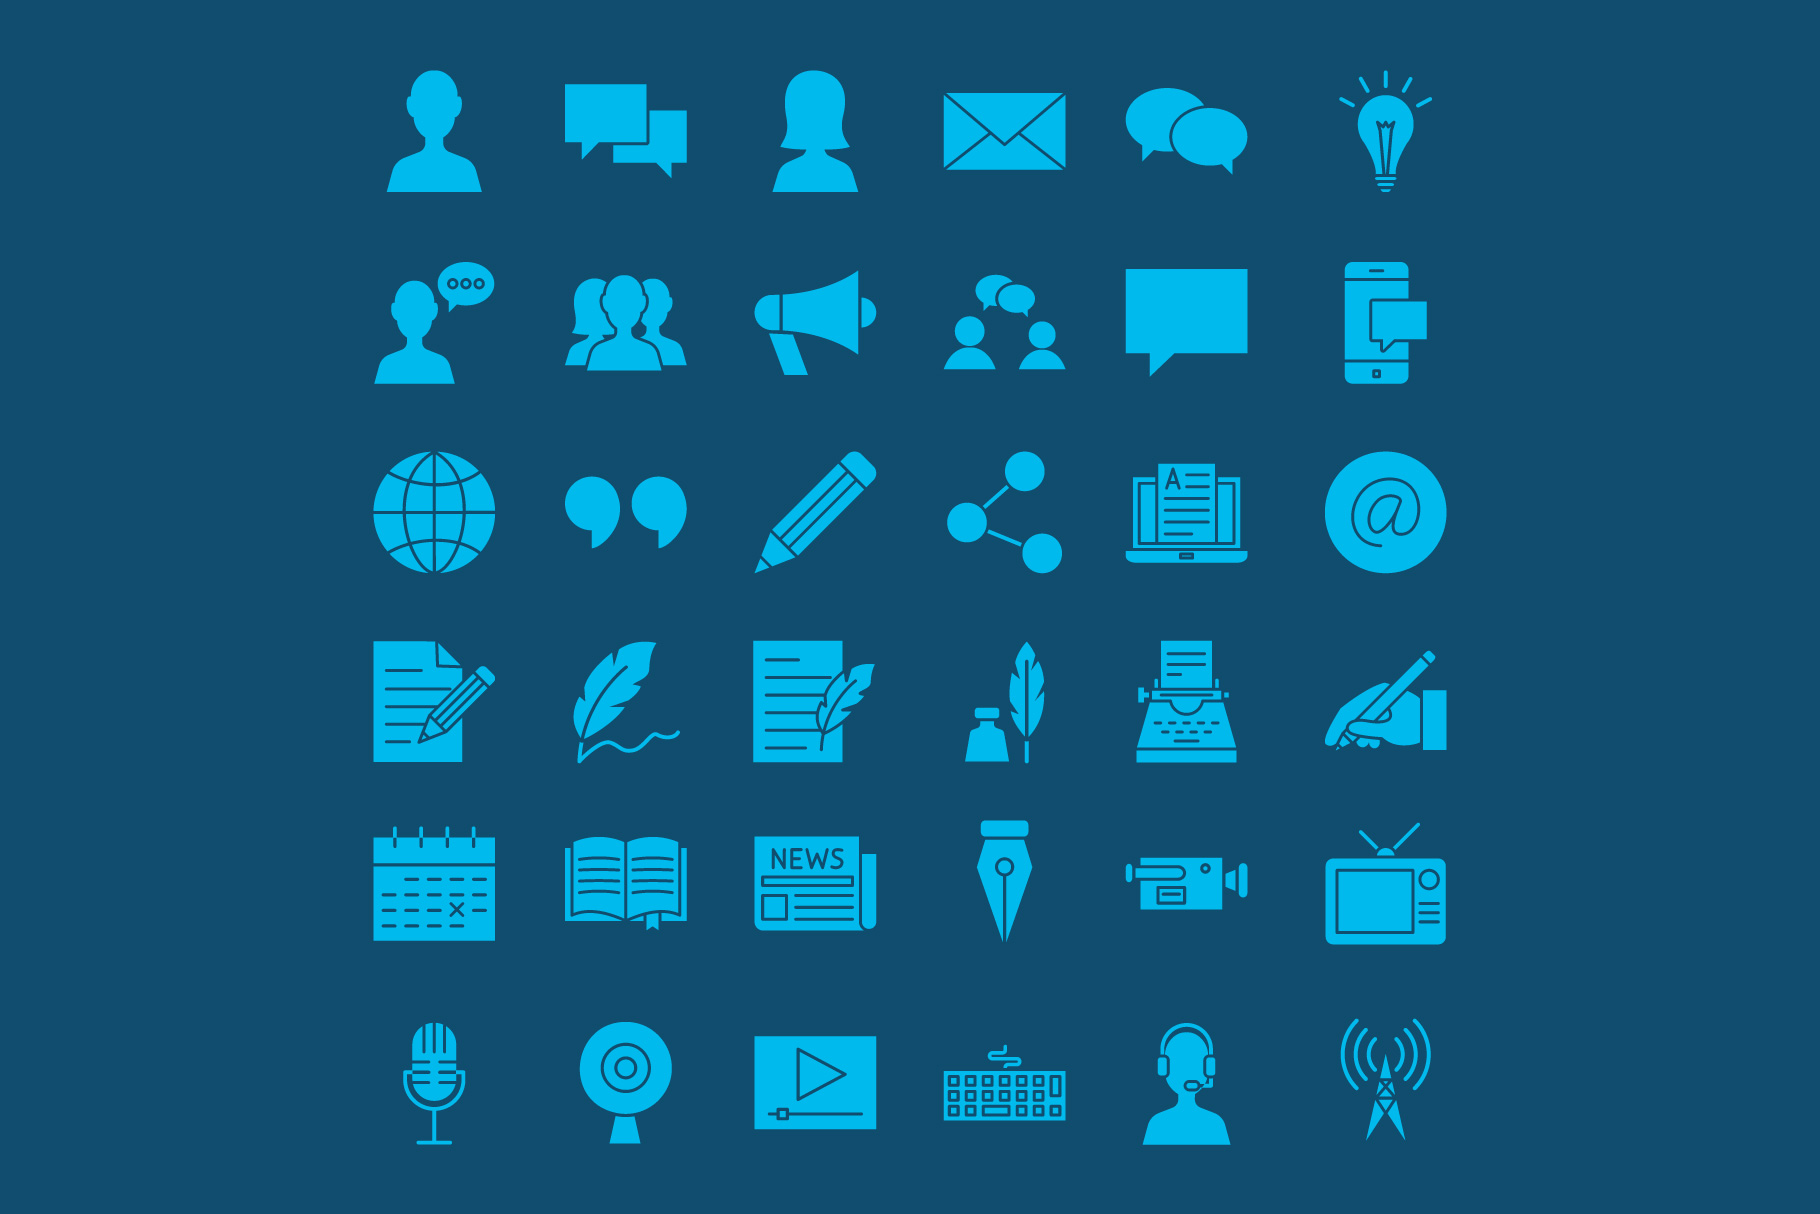 Blog Line Art Icons example image 2